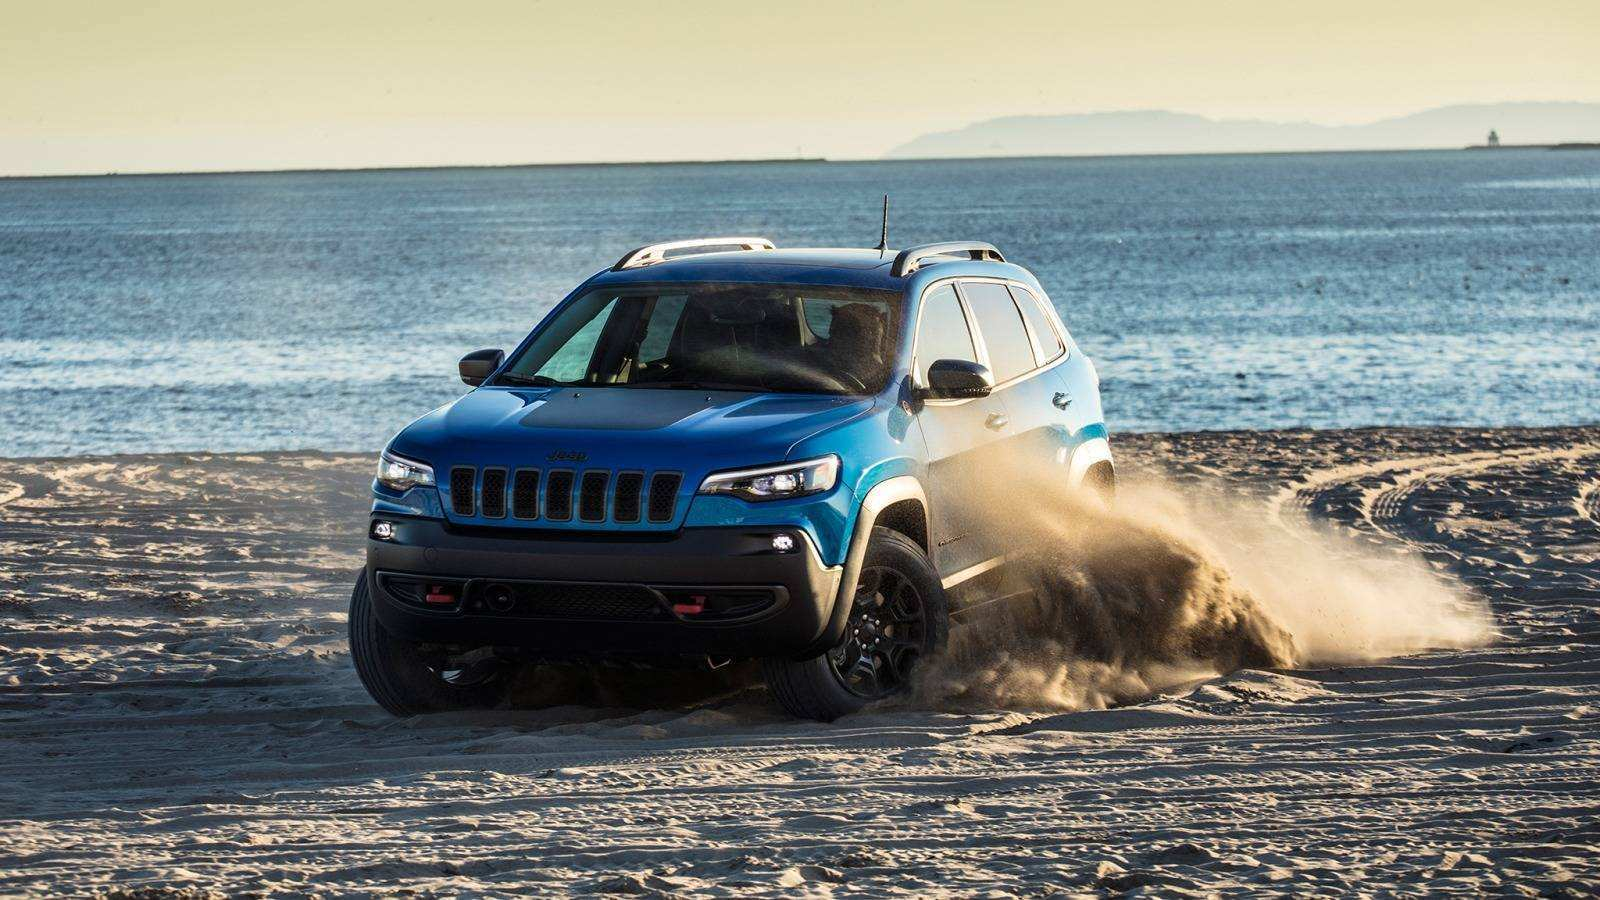 48 All New The 2019 Jeep Cherokee Ride Quality Release Date Price And Review Style for The 2019 Jeep Cherokee Ride Quality Release Date Price And Review